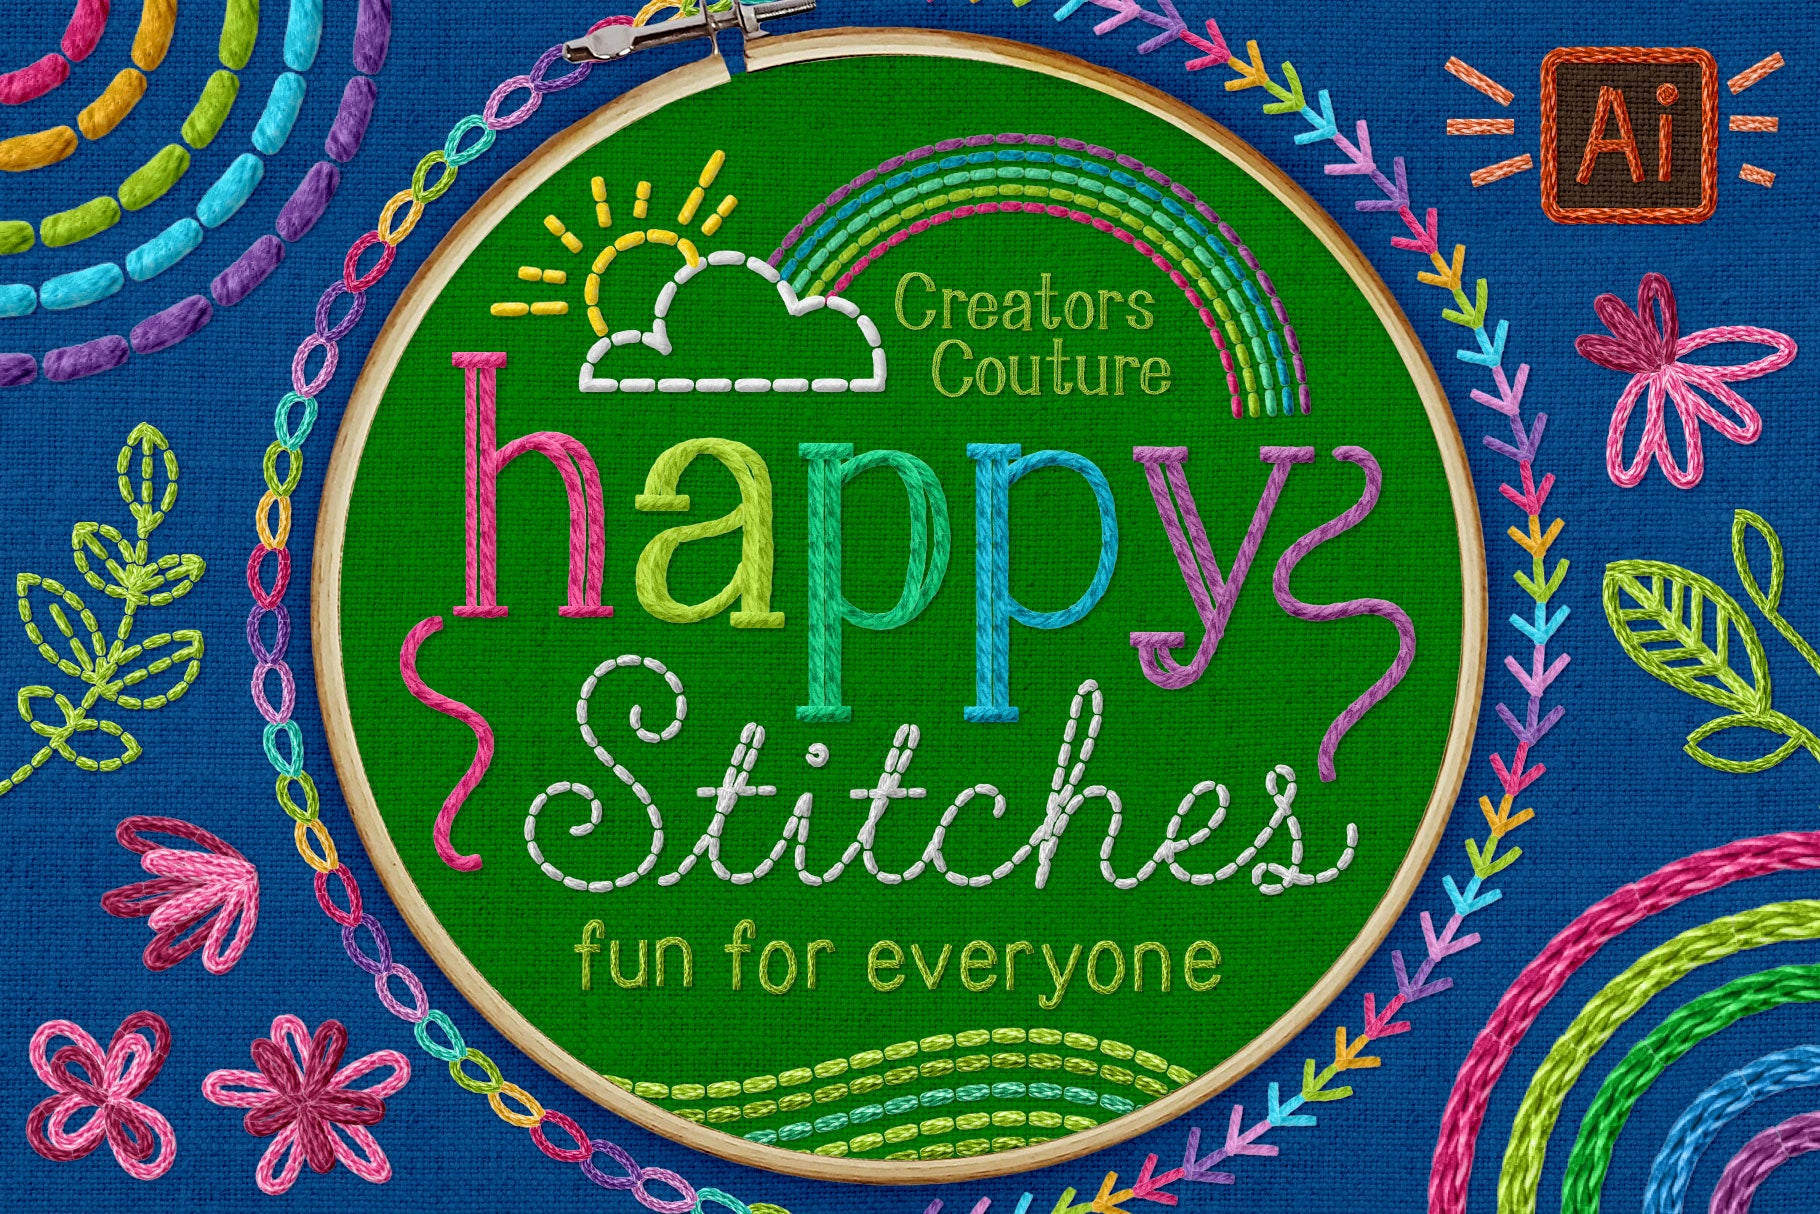 Happy Stitches! Adobe Illustrator Brushes for a Hand-Embroidered Illustration Effect